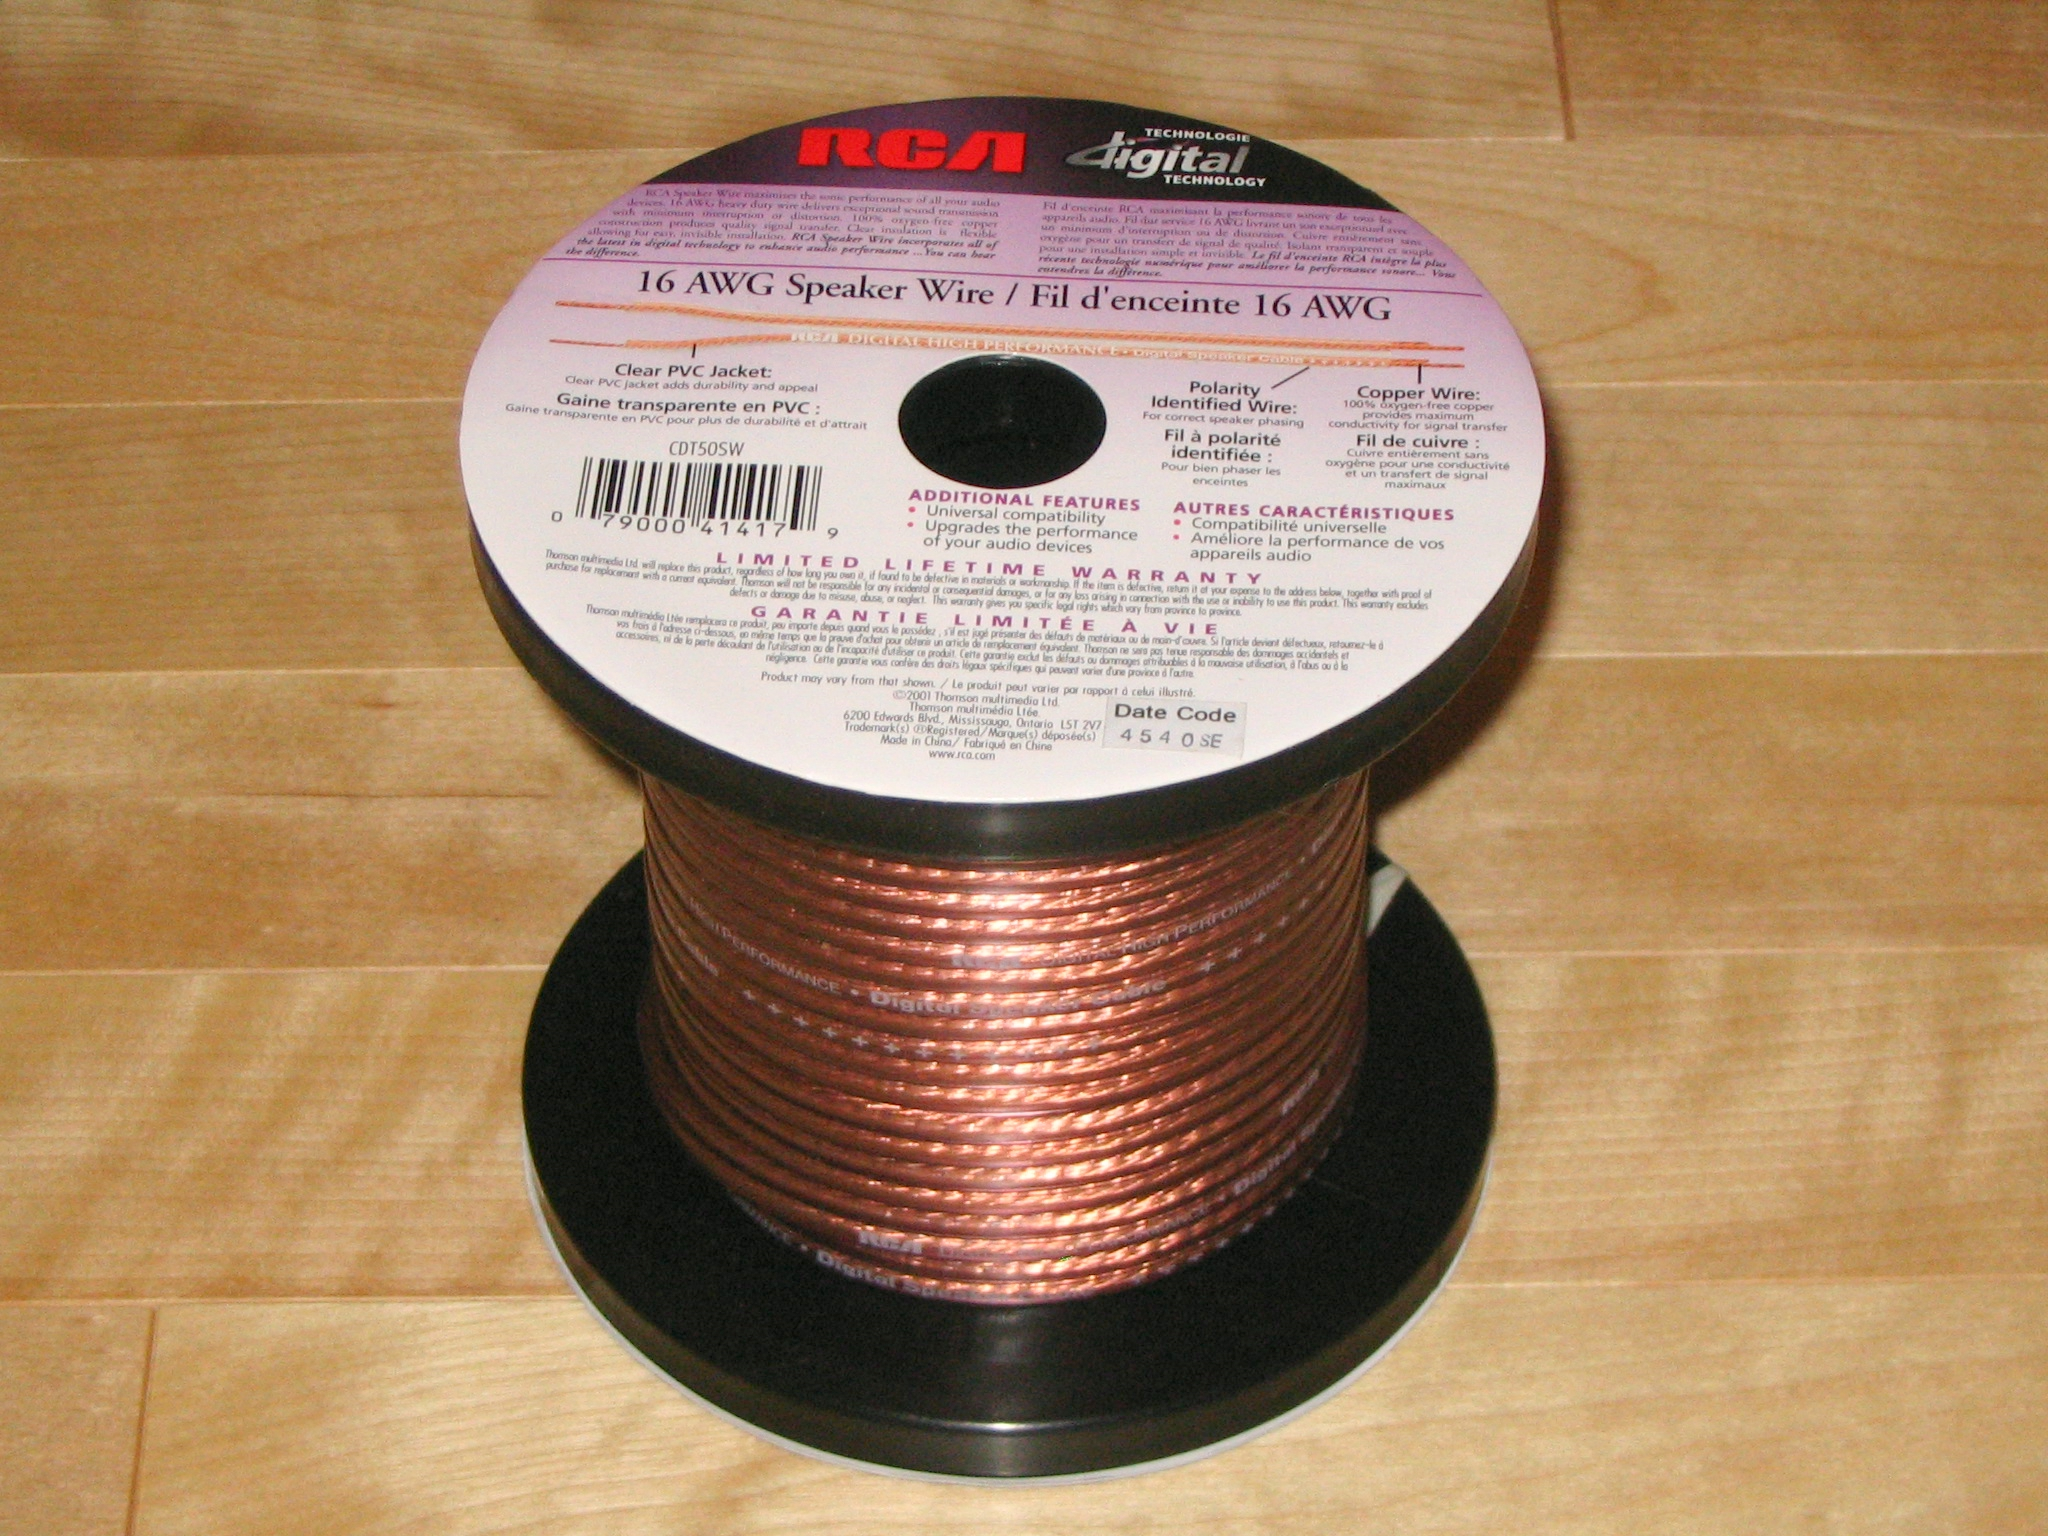 Wire Size Amp Chart: Speaker wire.JPG - Wikimedia Commons,Chart